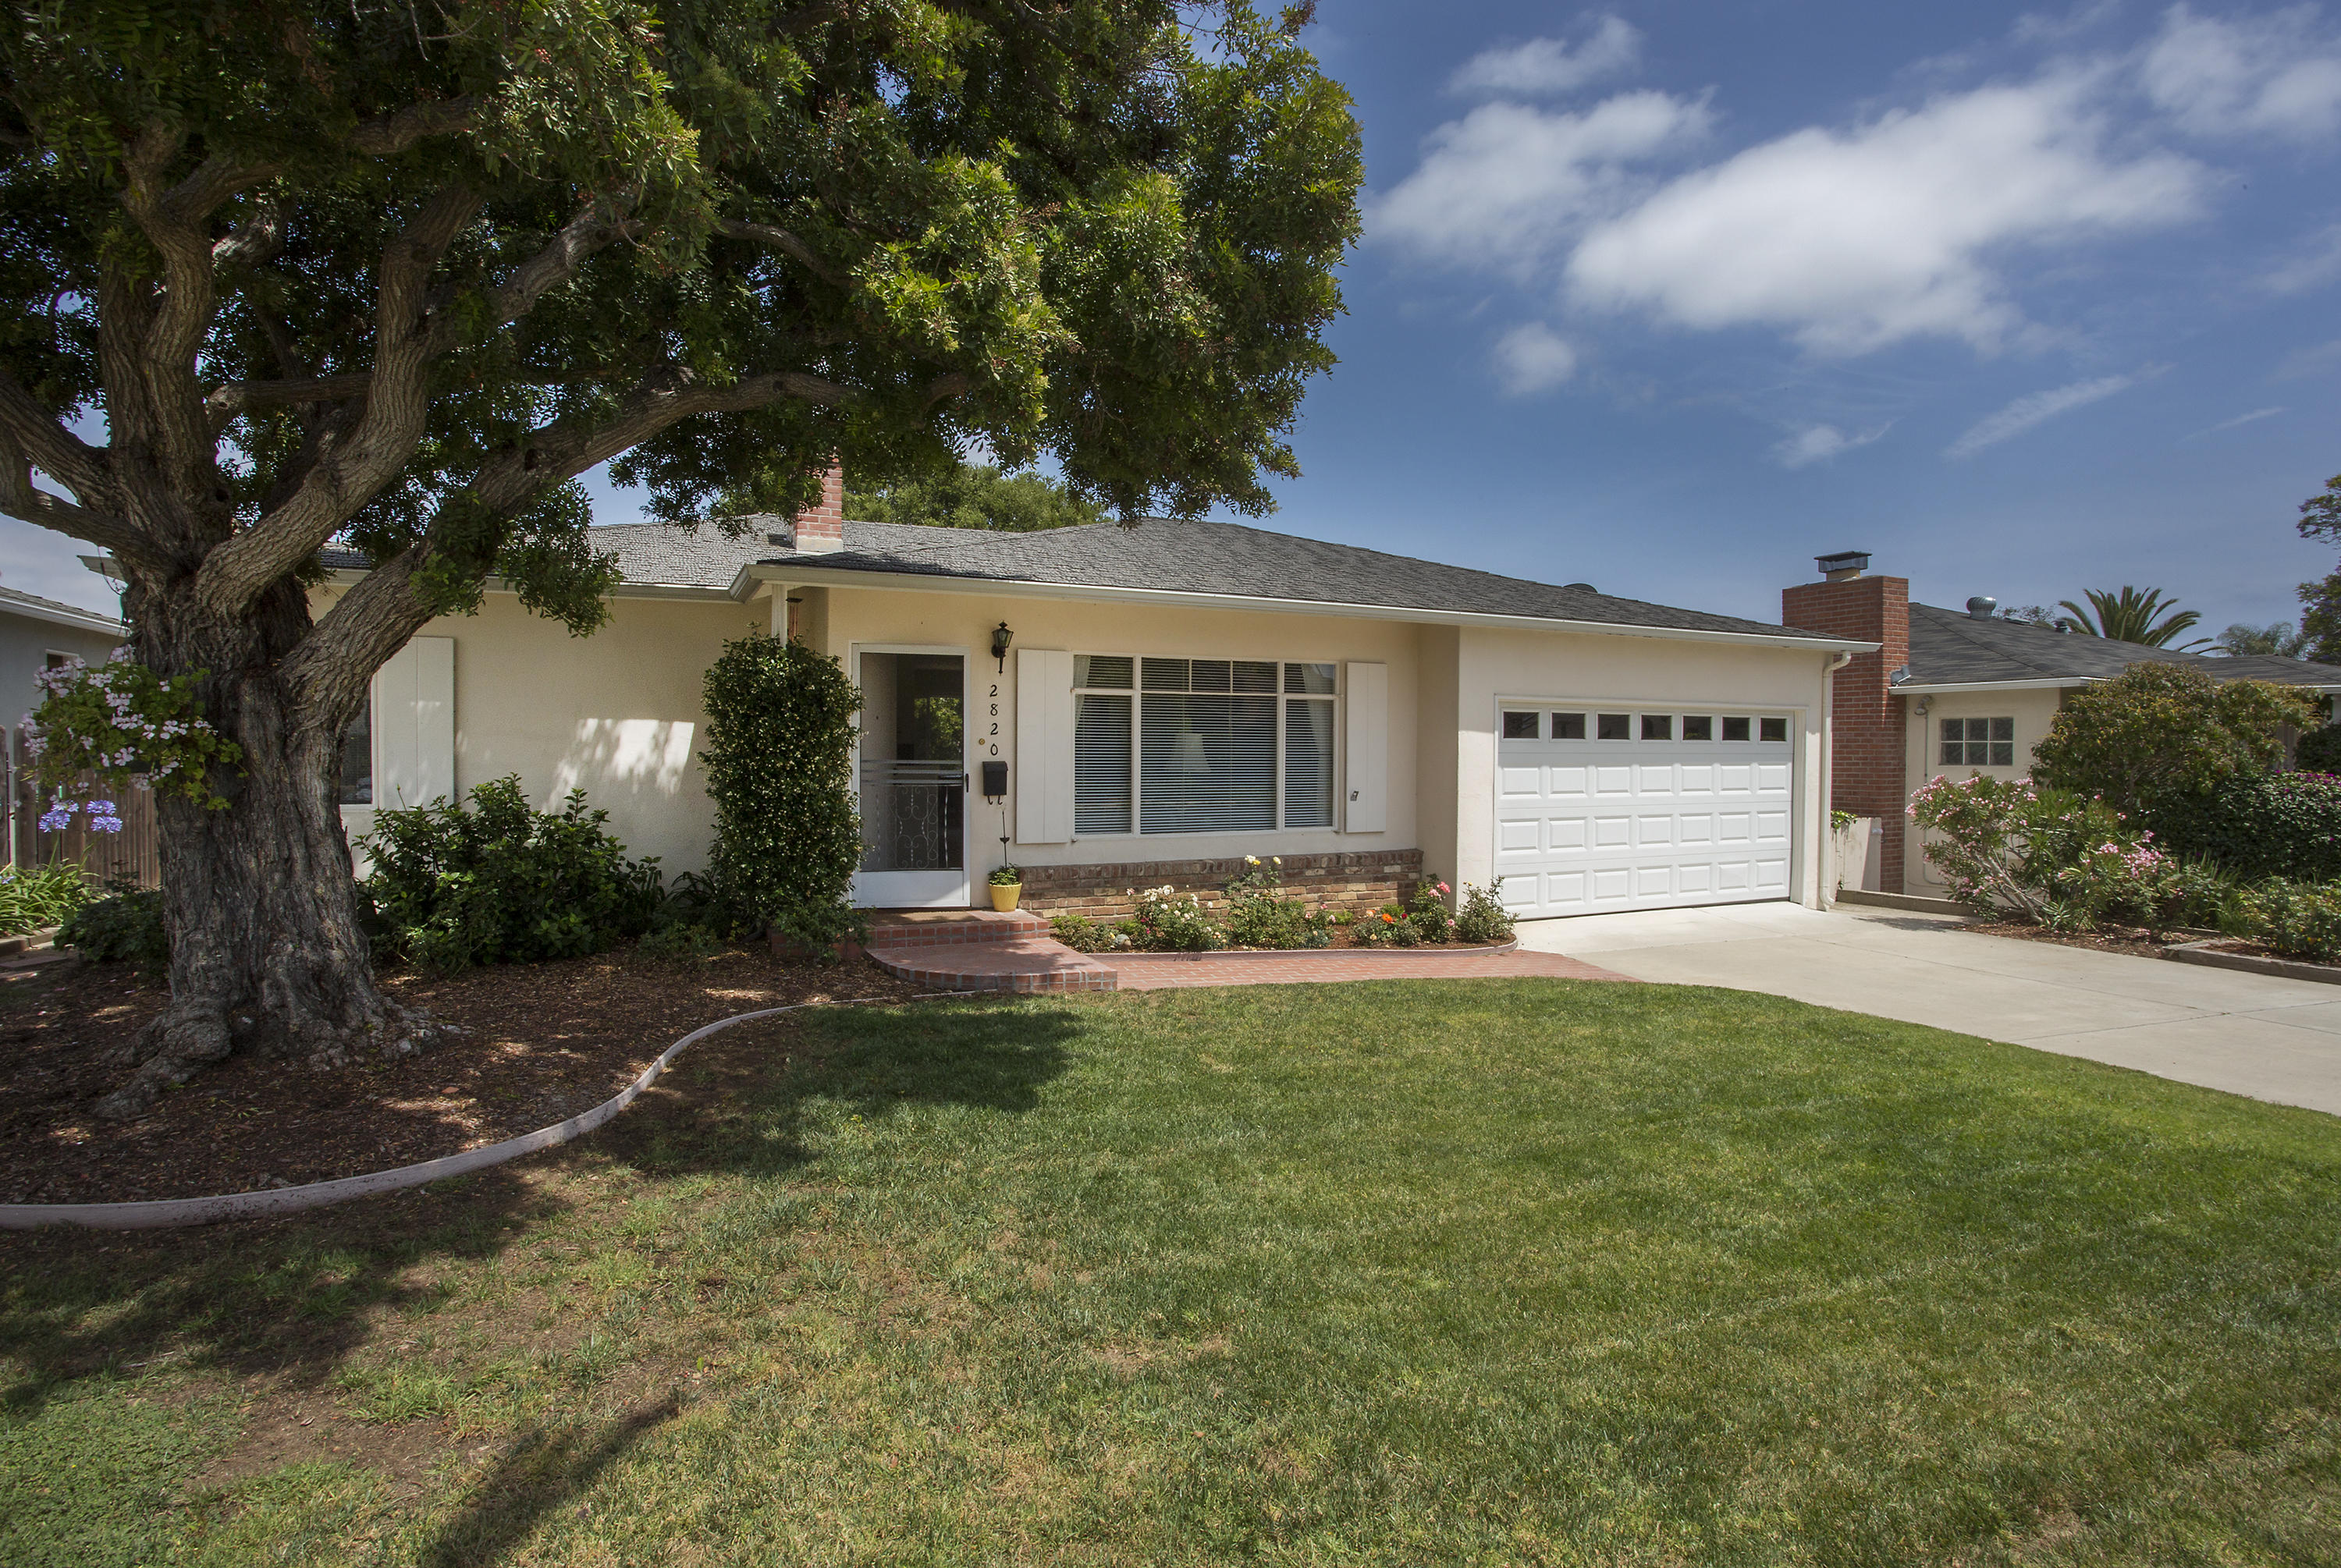 Property photo for 2820 Clinton Ter Santa Barbara, California 93105 - 15-1758